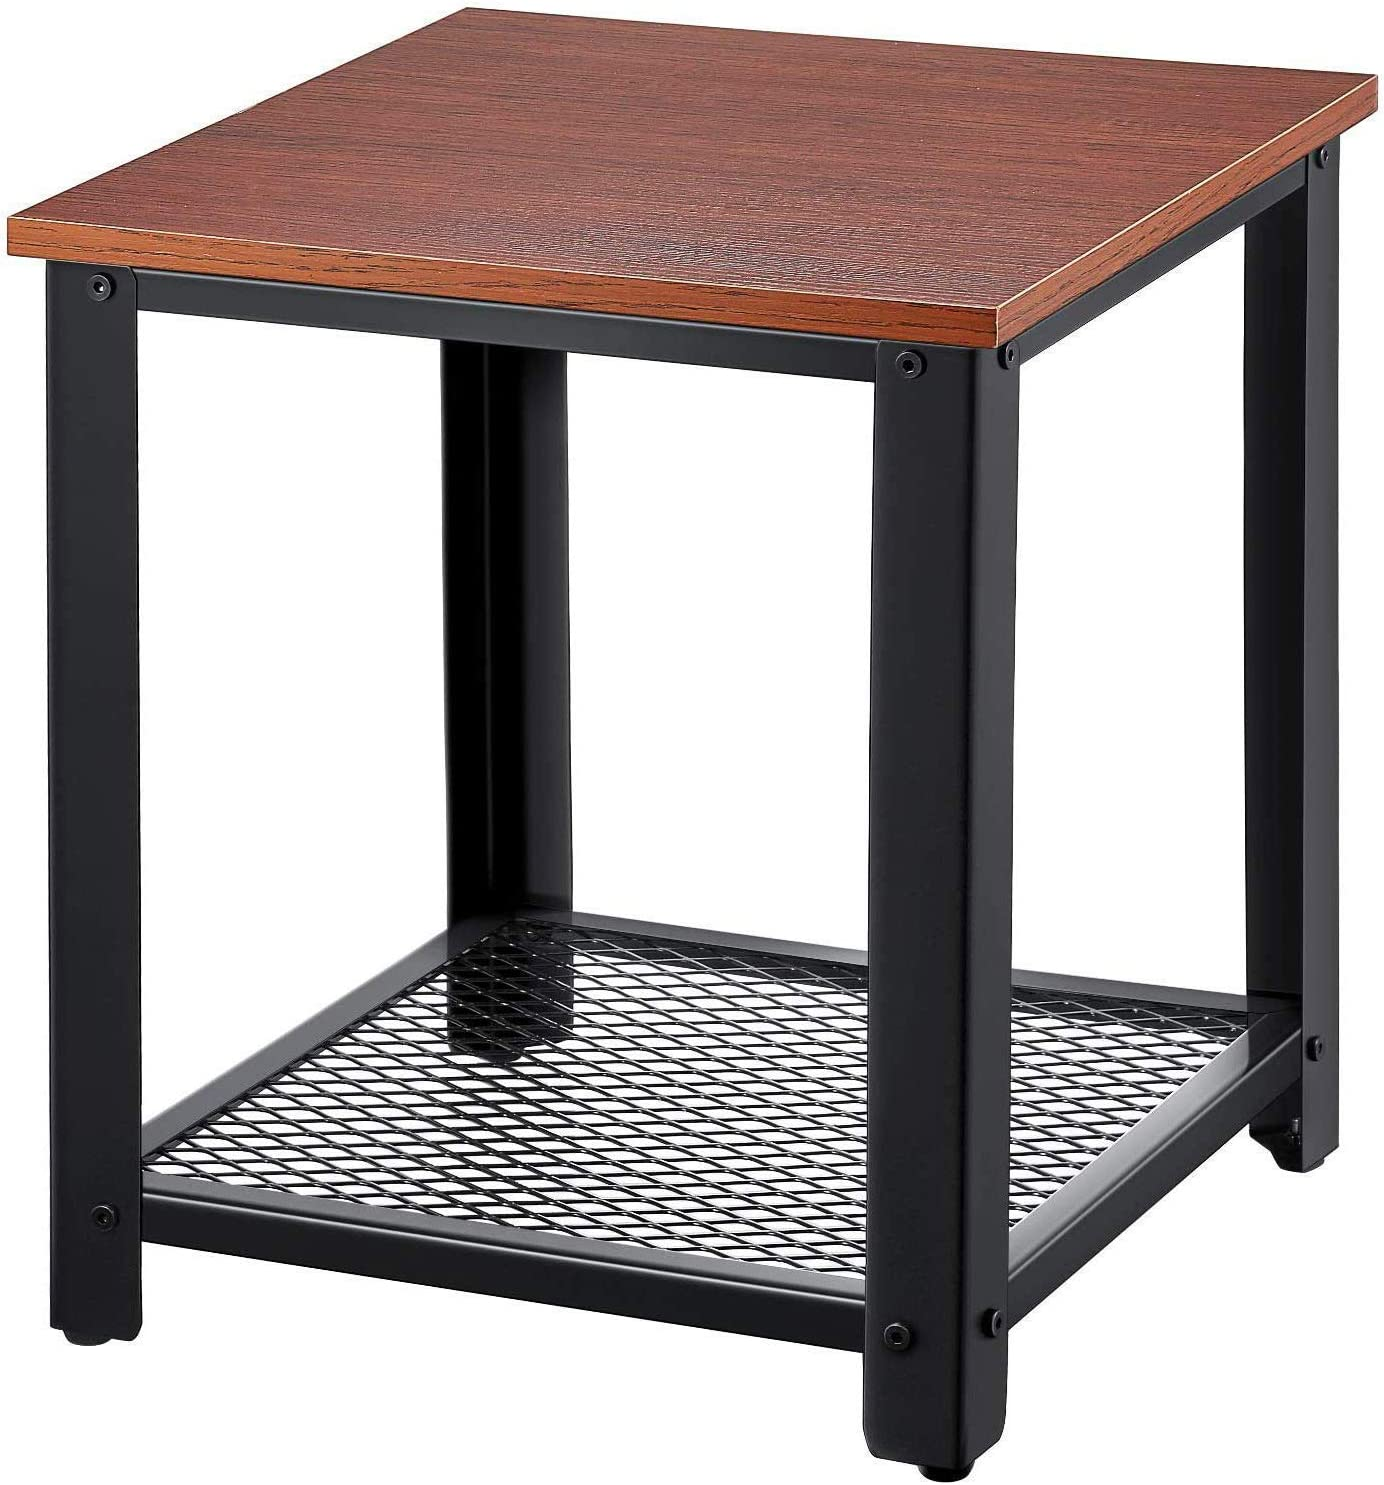 Small End Table 2-Tier End Side Tables Bedroom Living Room Nightstand with Storage Shelf, Sturdy Wood and Stable Black Metal Frame Bedside Corner Furniture Dark Brown